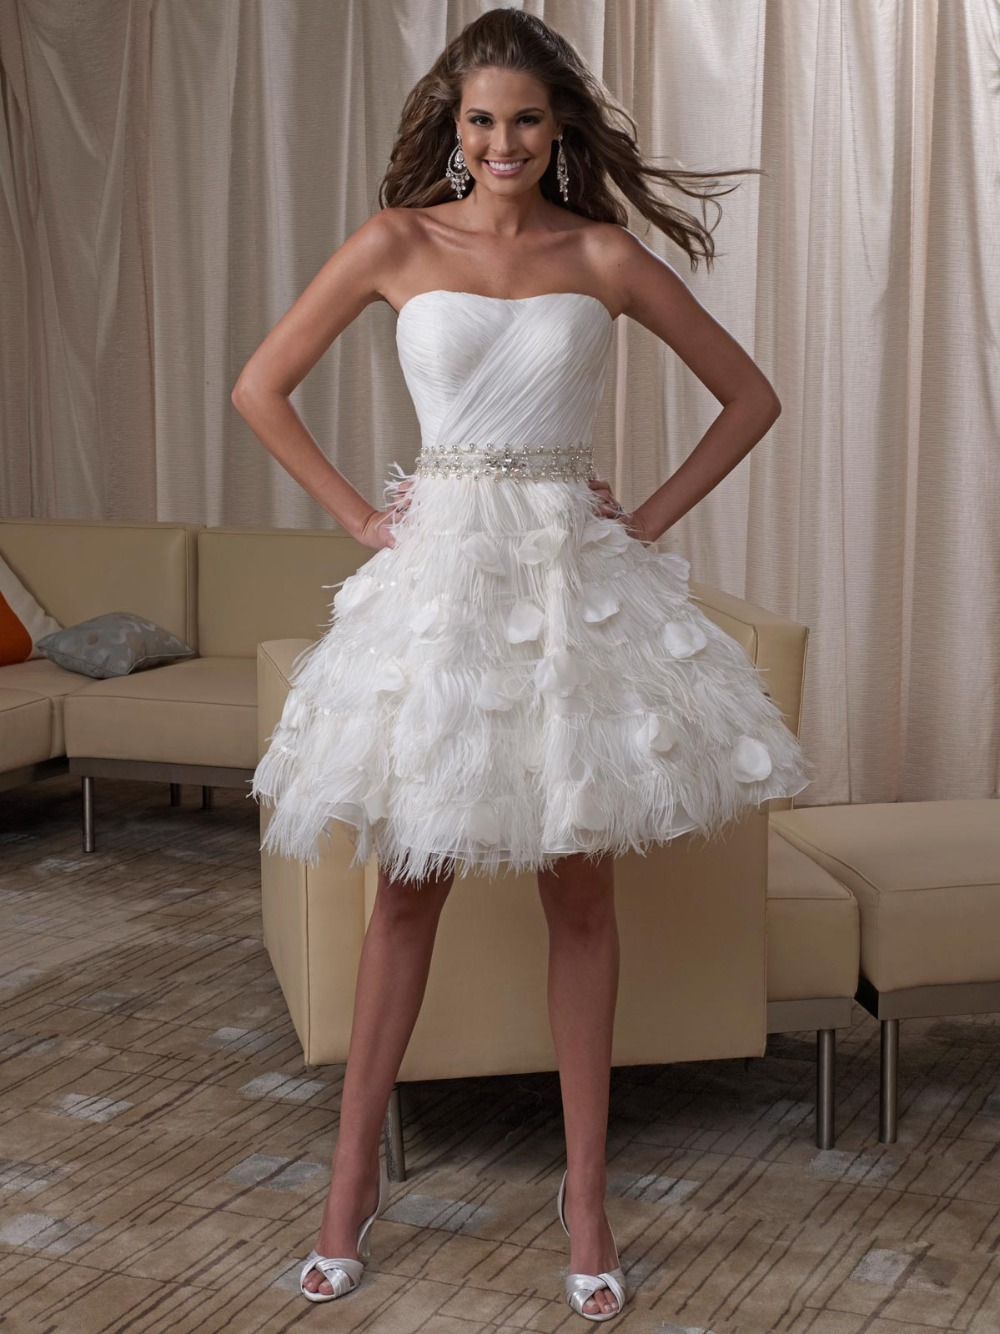 sheer white bridal gowns sweetheart knee length chiffon feathers short wedding dresses 2016